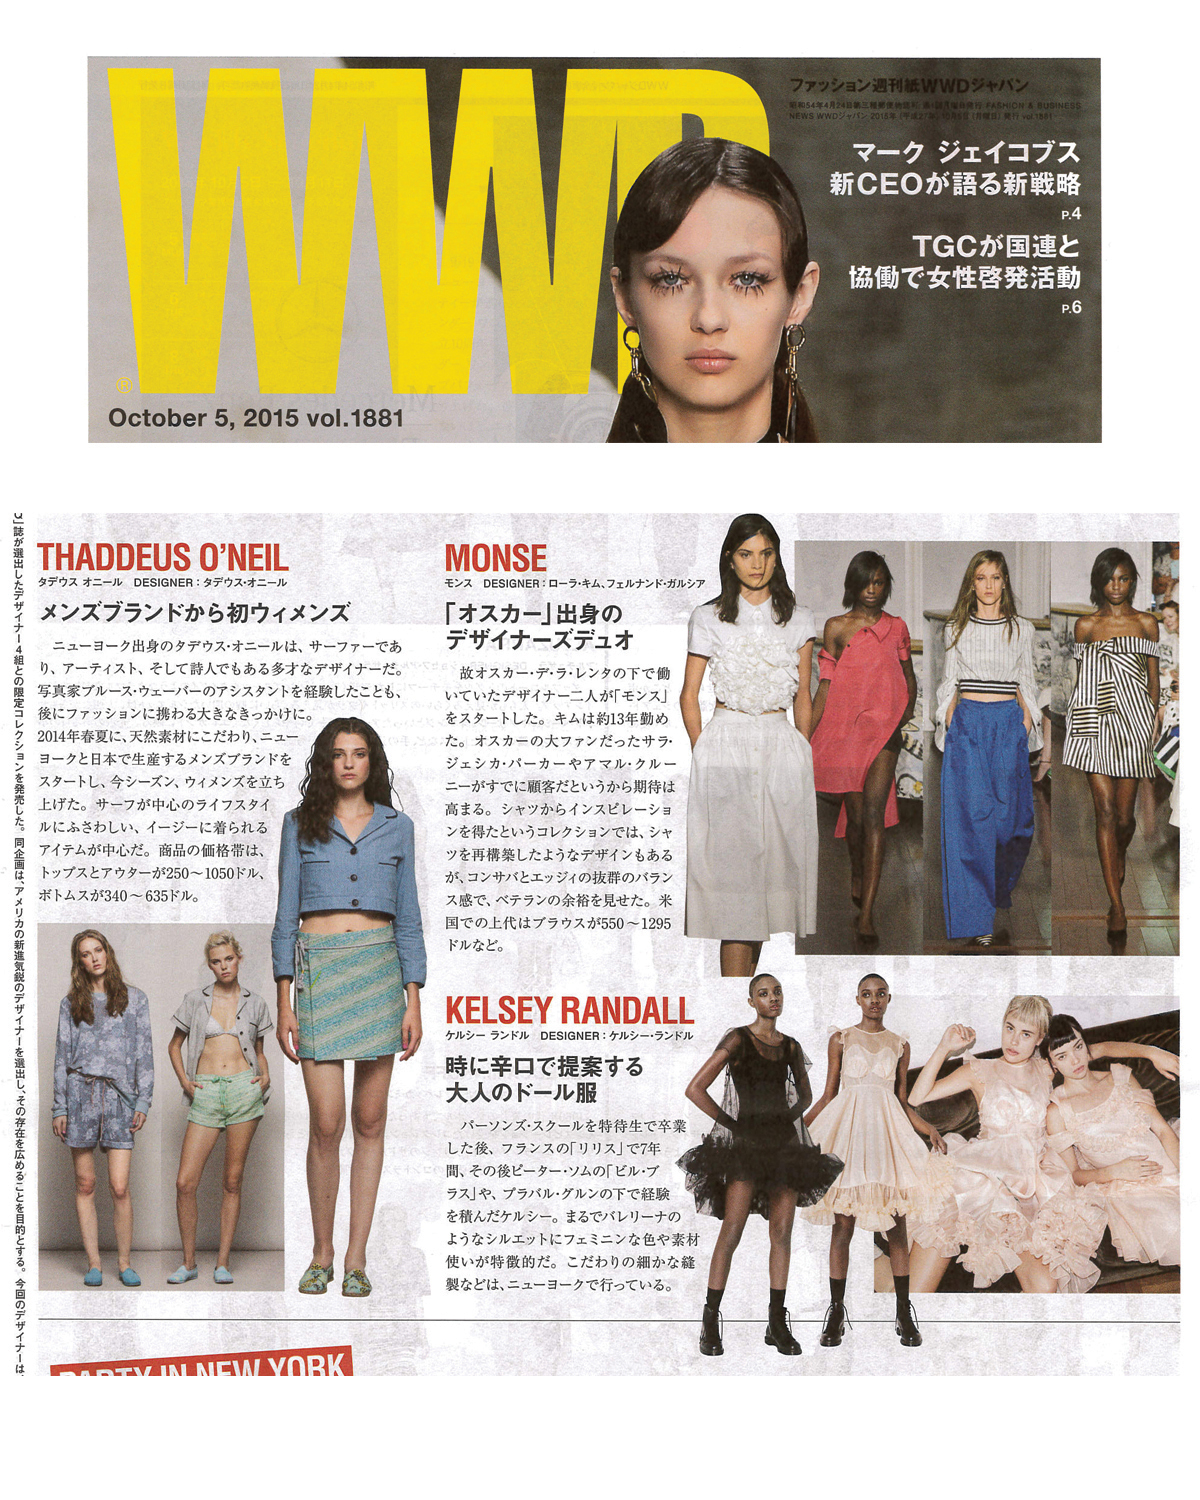 WWD Japan womens wear daily feature spotlight kelsey randall thaddeus o'neil monse romantic dreamy peach pink ballet mermaid ruffle scalloped hem babydoll dress cloud tulle gathered cap short sleeve sheer romantic dreamy cute girly frilly princess cupcake japanese 70's style retro daywear sportswear seventies hipster cool stylist made-to-measure womenswear bridal custom bespoke handcrafted sustainable ethical local production manufacturing made in new york city nyc brooklyn bushwick emerging designer ones to watch new talent rising star best of american fashion young designer fashion week nyfw front show show coverage